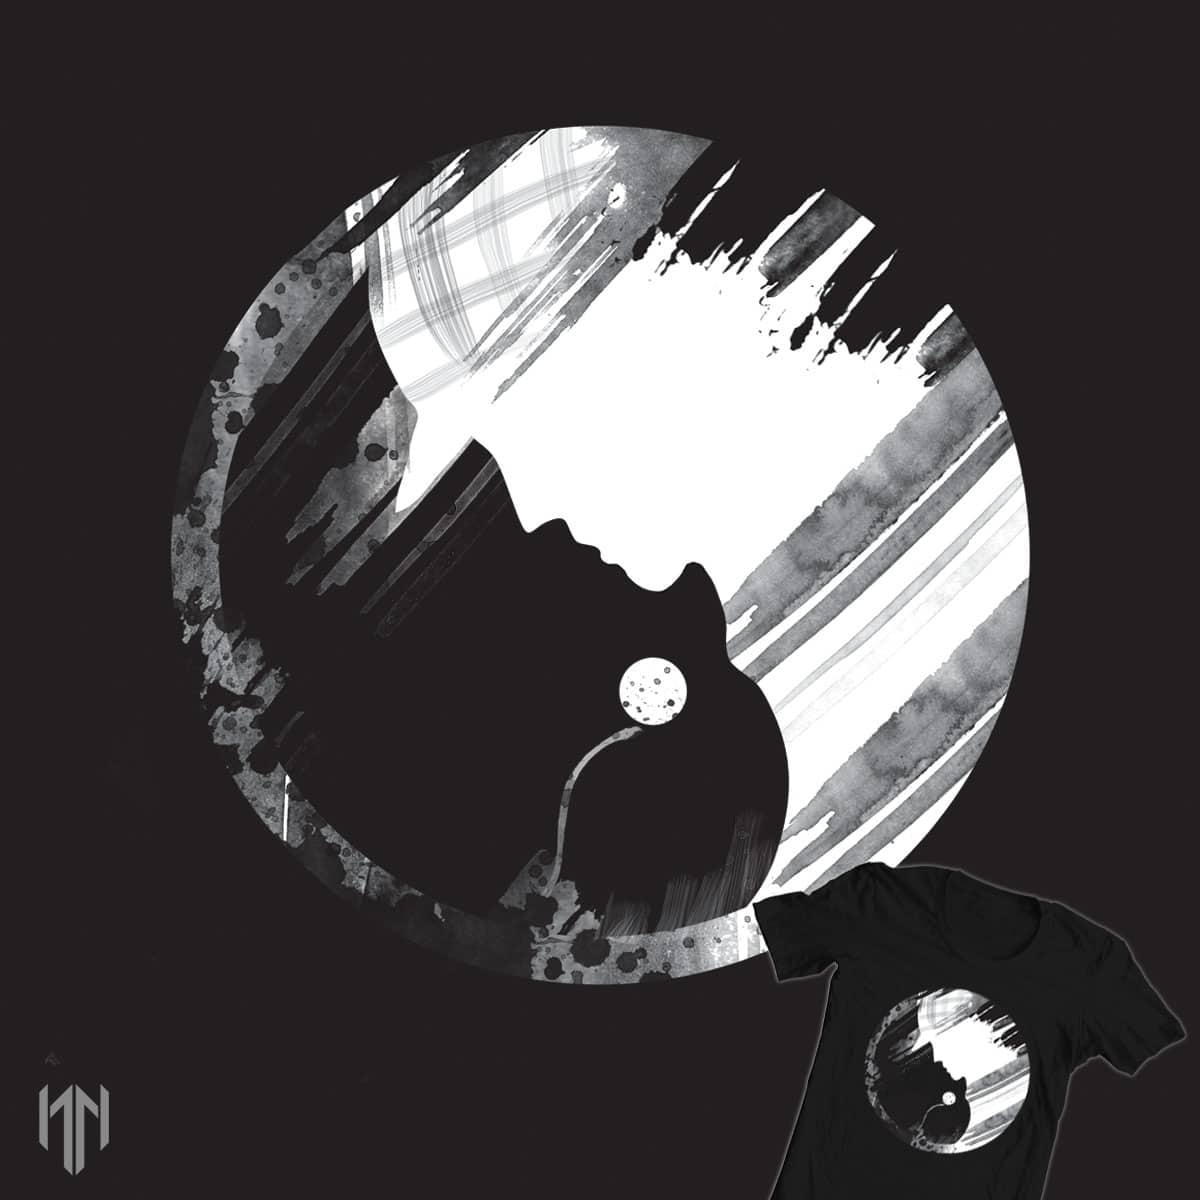 When Two Worlds Collide by normannazar on Threadless